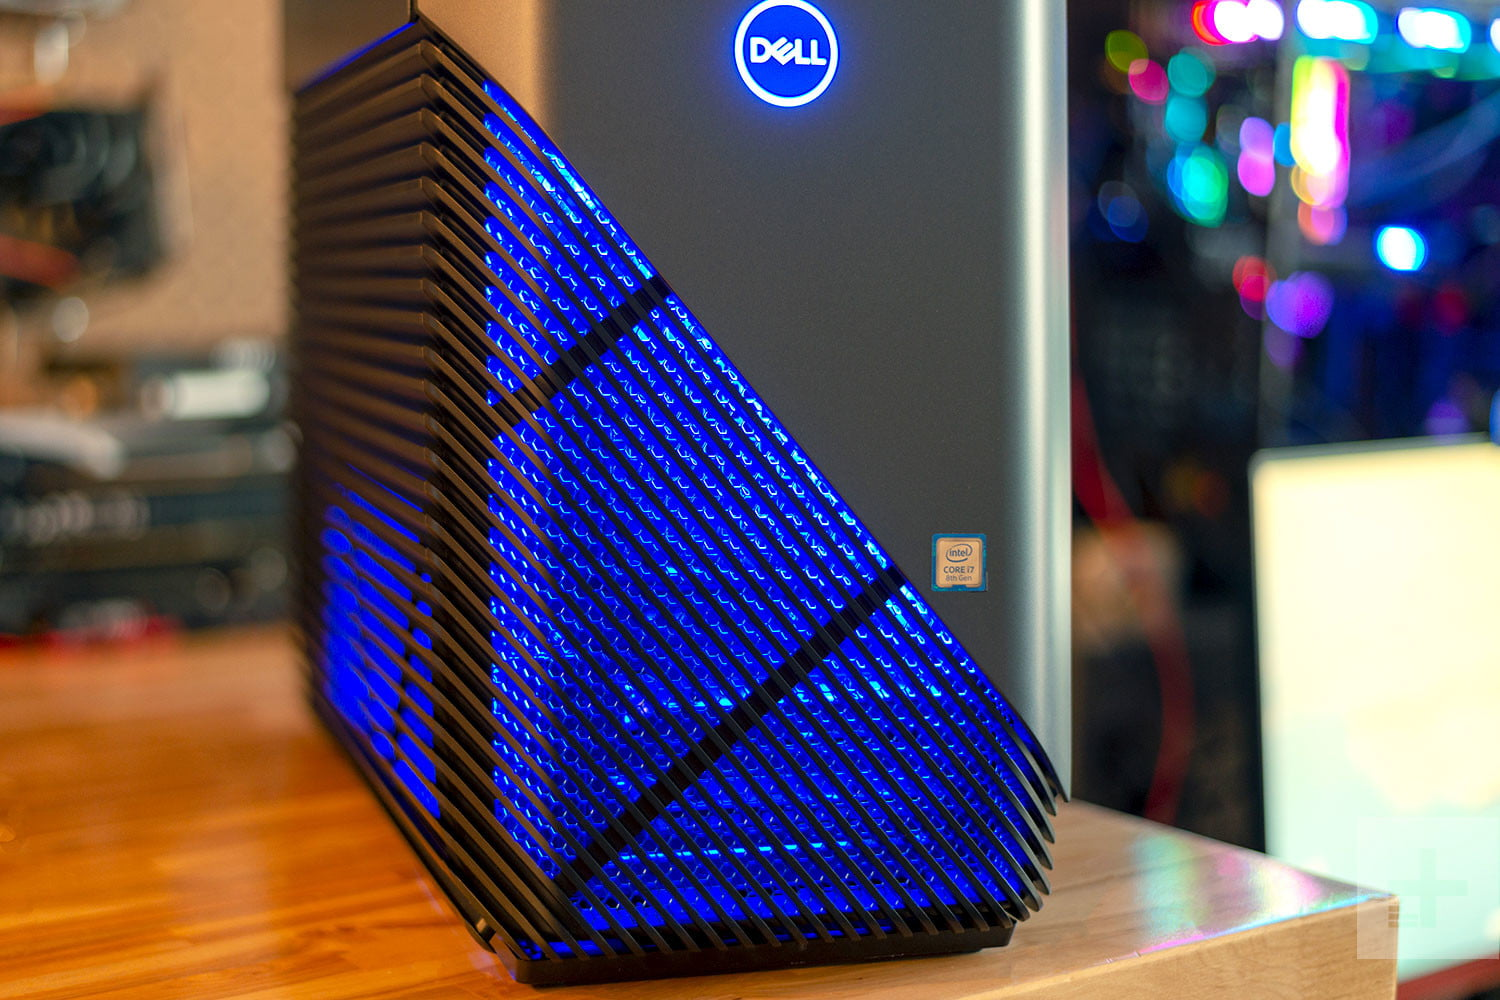 Dell Inspiron 5680 Gaming Desktop Review | Digital Trends